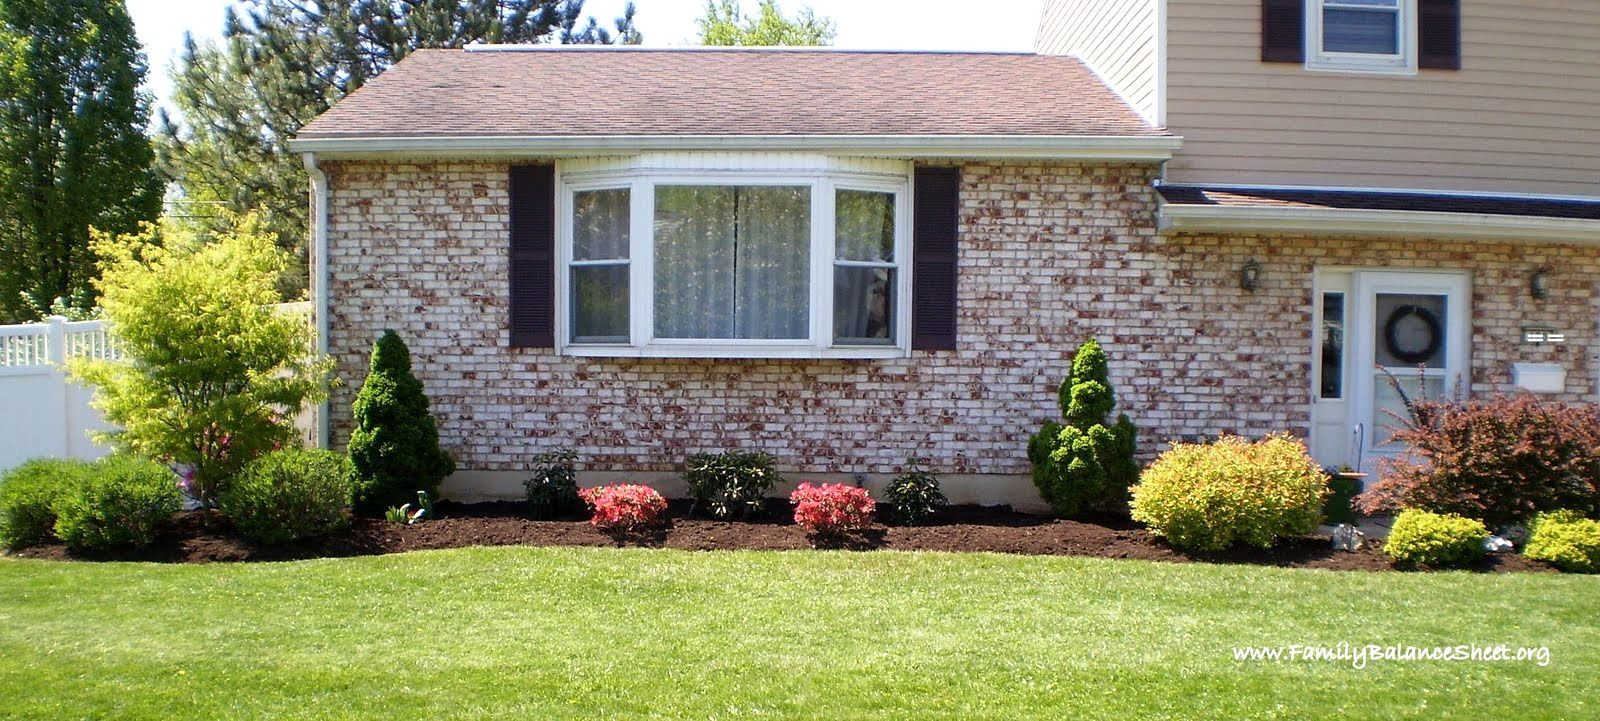 Landscaping ideas front yard ranch style home front yard for Simple cheap landscaping ideas